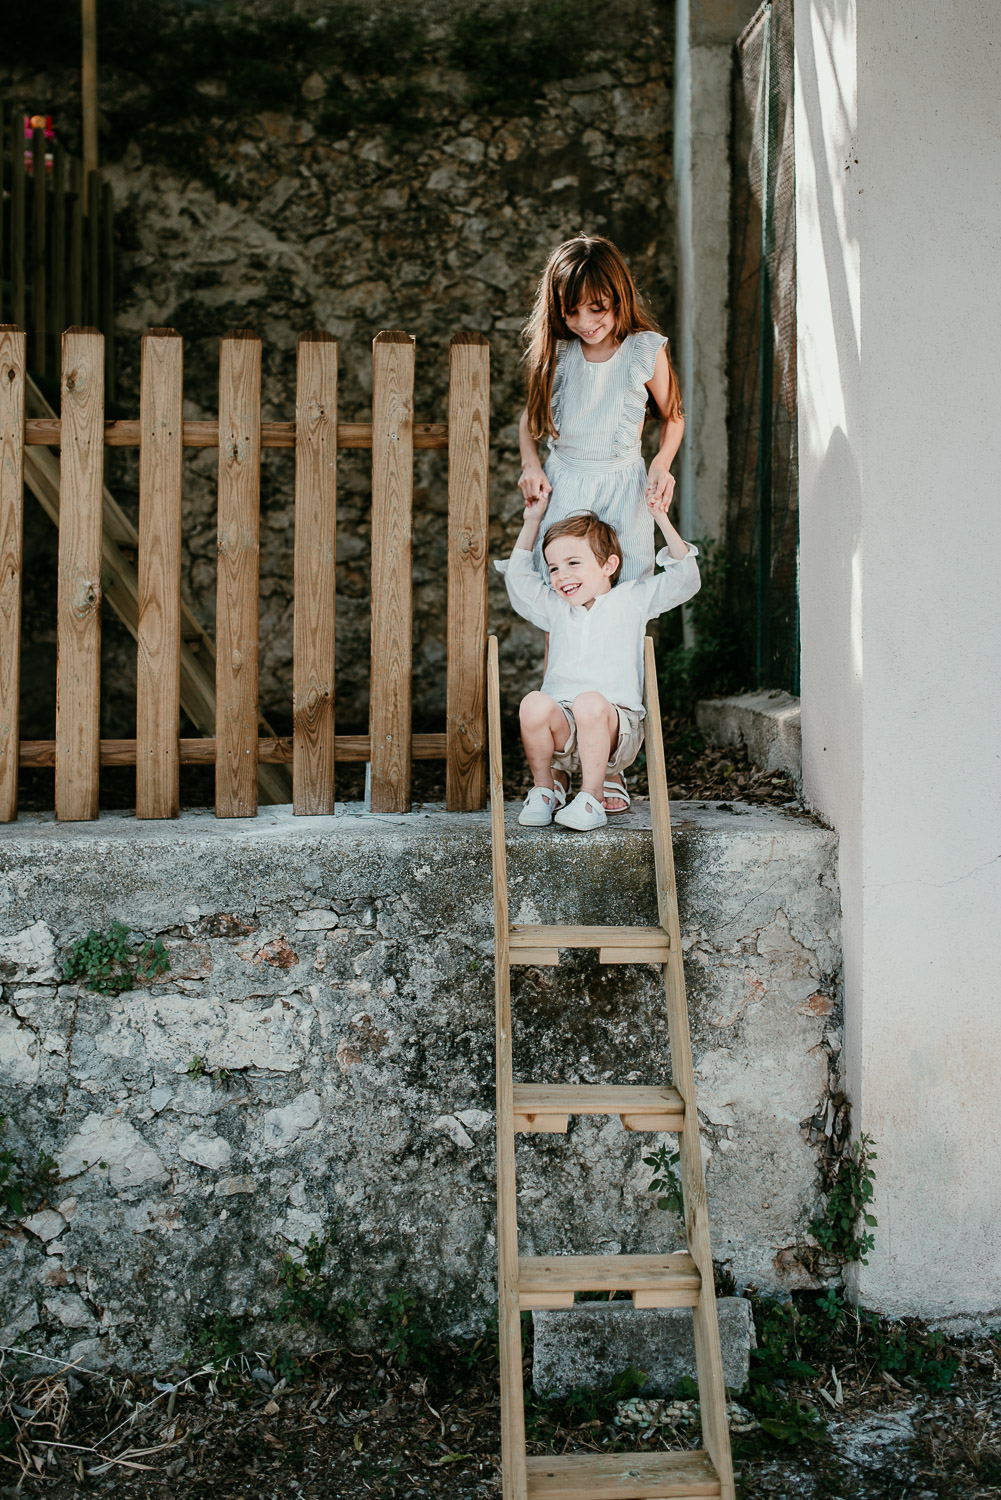 Two children are in their garden. The little boy is sitting on the wall and his feet are on top of a ladder in front of him.His sister is standing behind him. They are holding hands.